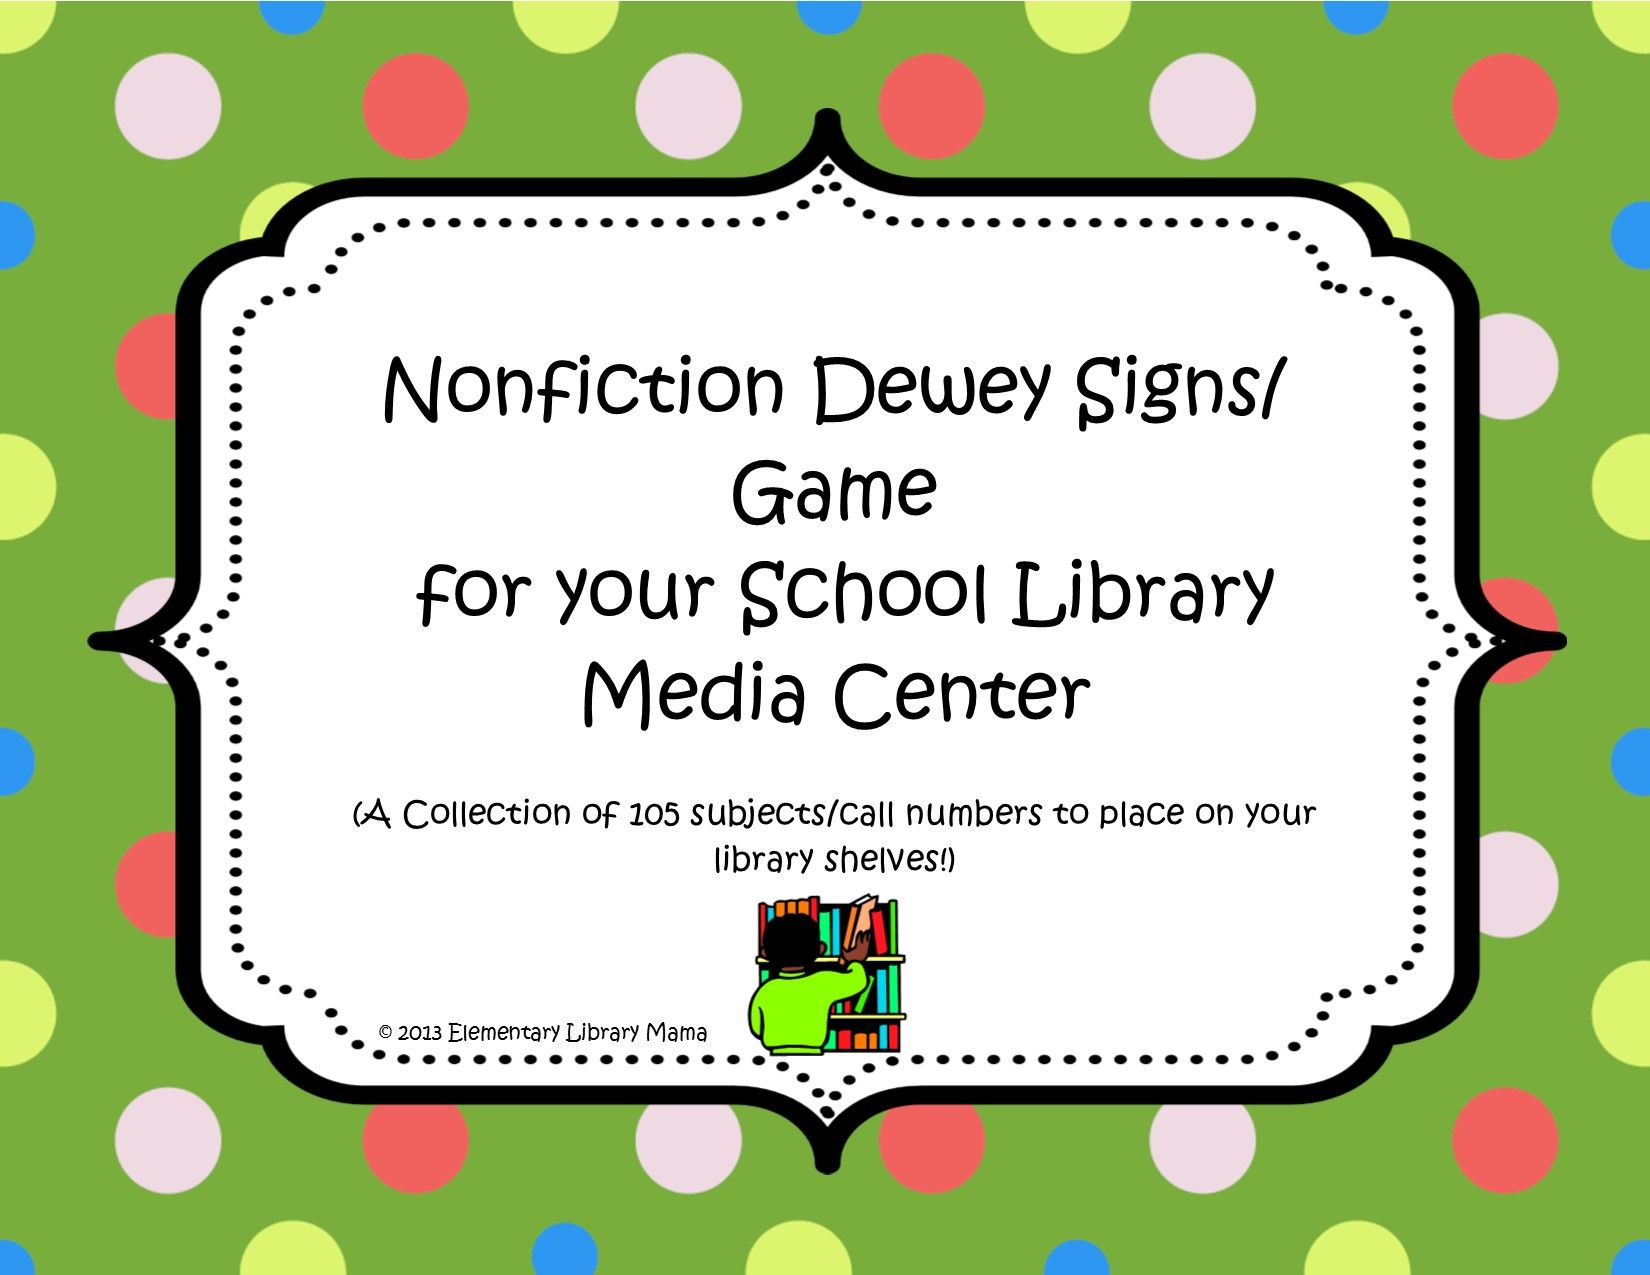 Nonfiction Dewey Signs Game For Your School Library Media